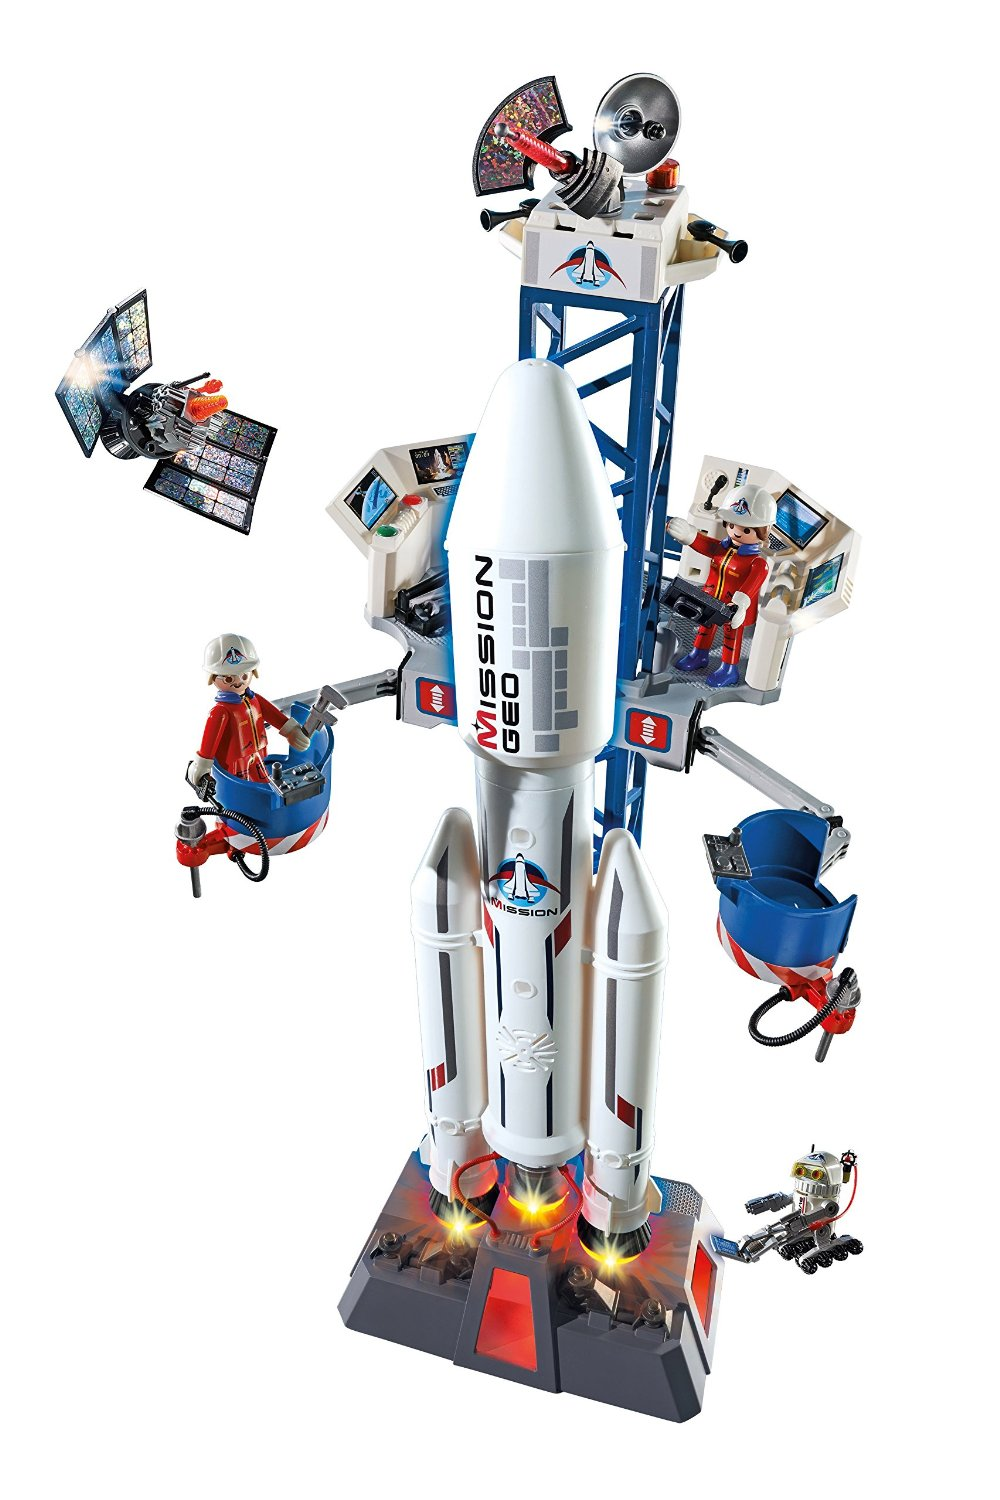 Space Rocket with Launchpad Play Set